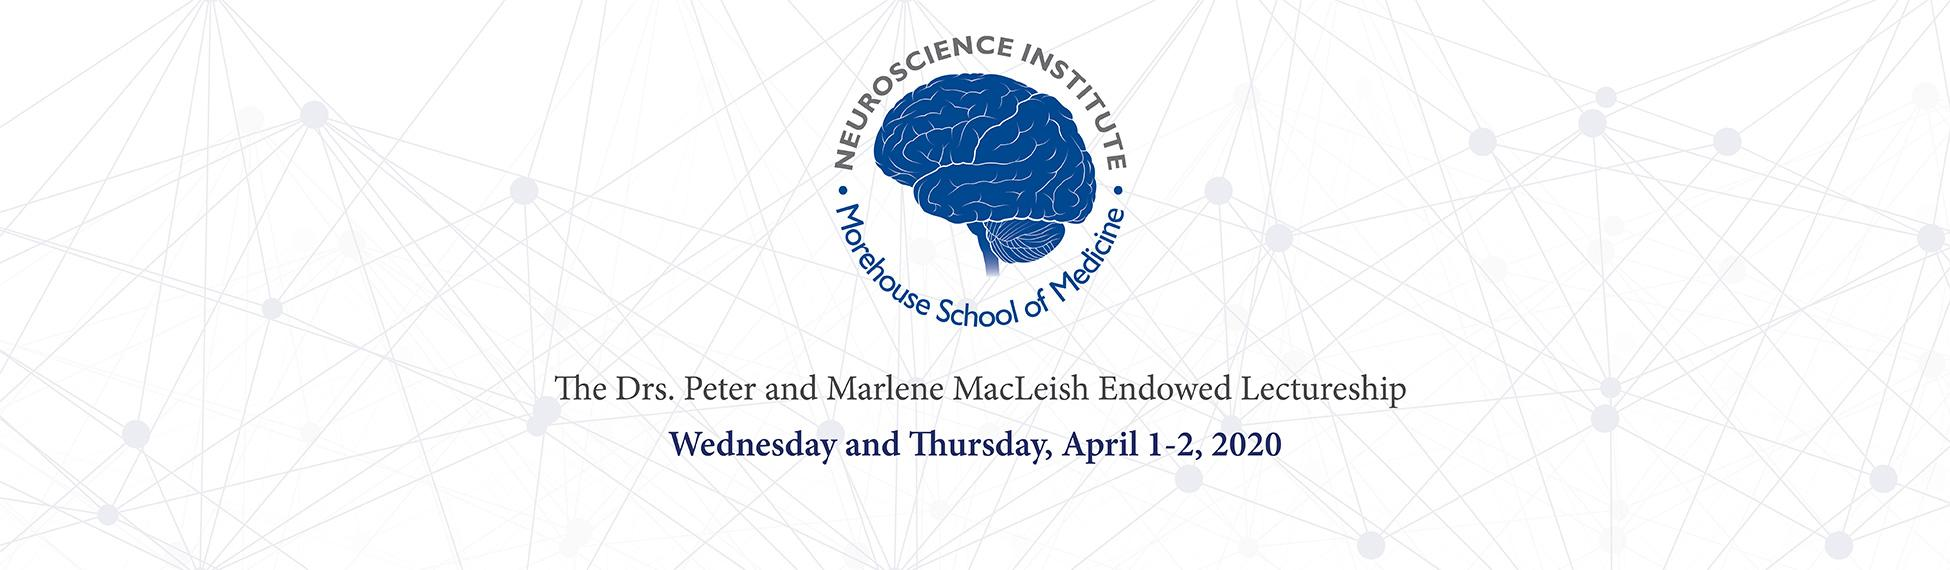 Drs. Peter and Marlene MacLeish Endowed Lectureship